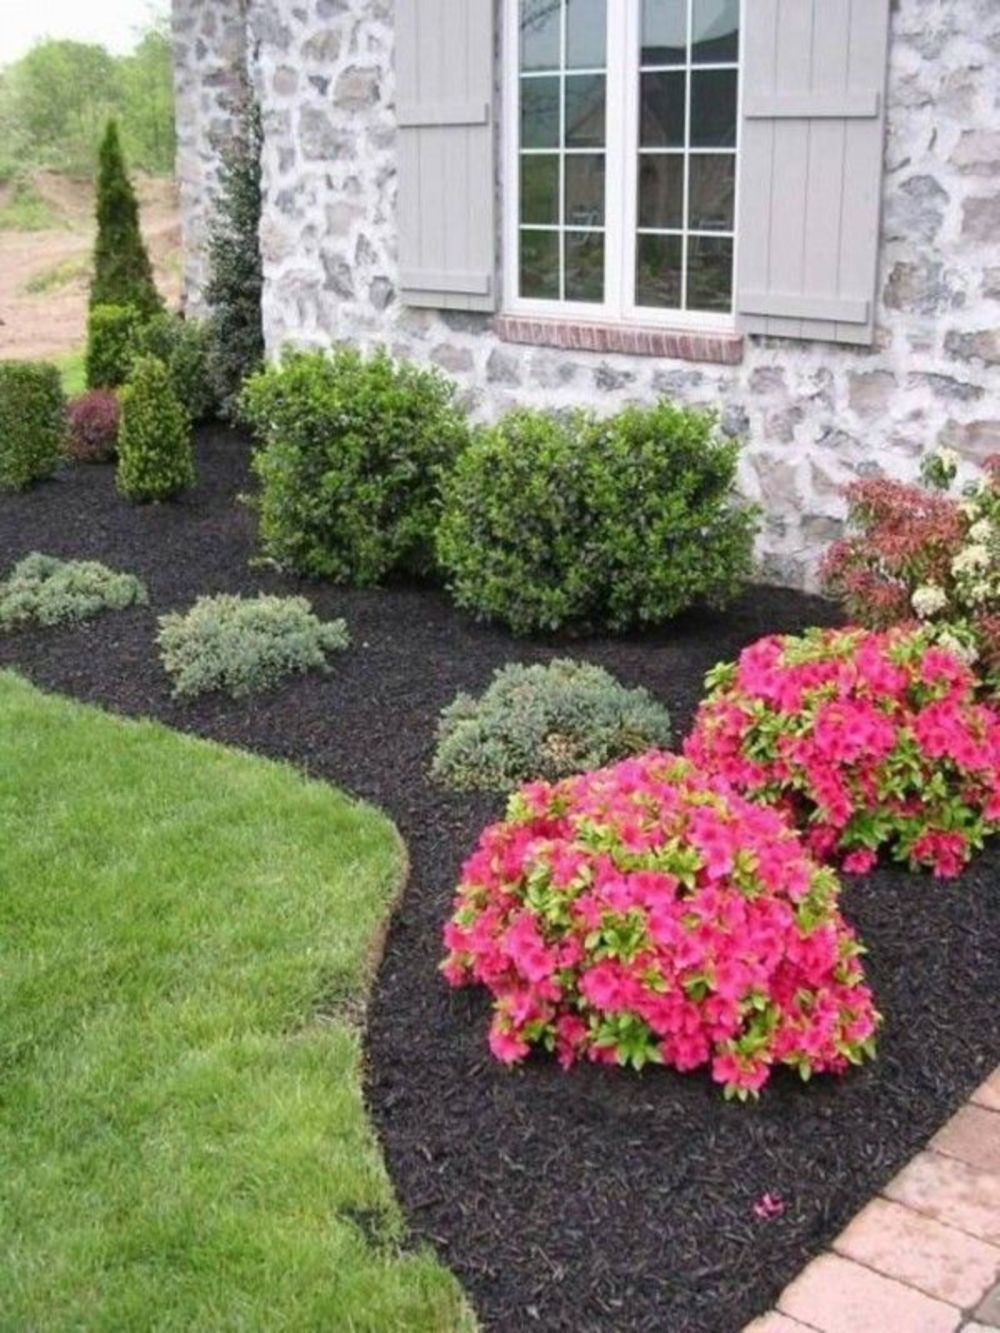 Stunning 26 Beautiful Flower Beds In Front Of House Design Ideas